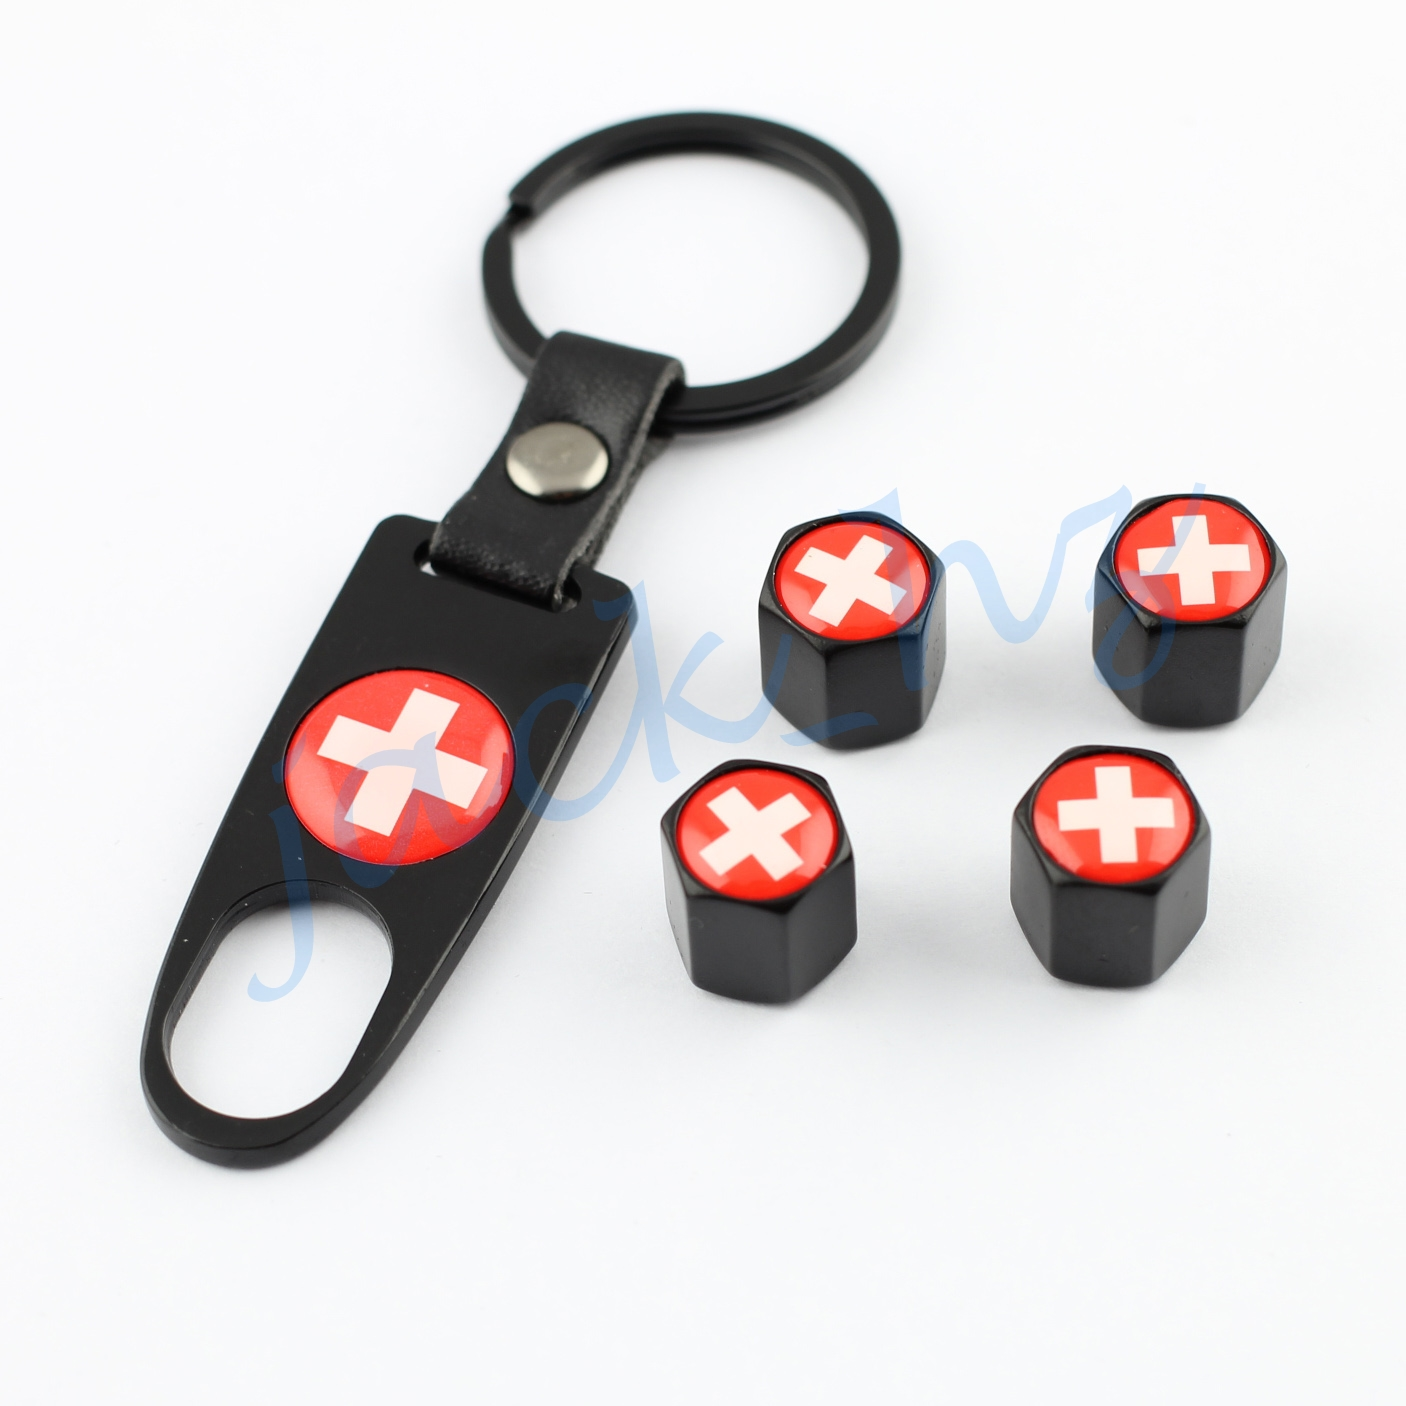 Auto Car Bike Accessories Parts Key Chain Style Tire Valve Caps Whees Dust Stem Cover Trim For Footprint Foot Print(China (Mainland))